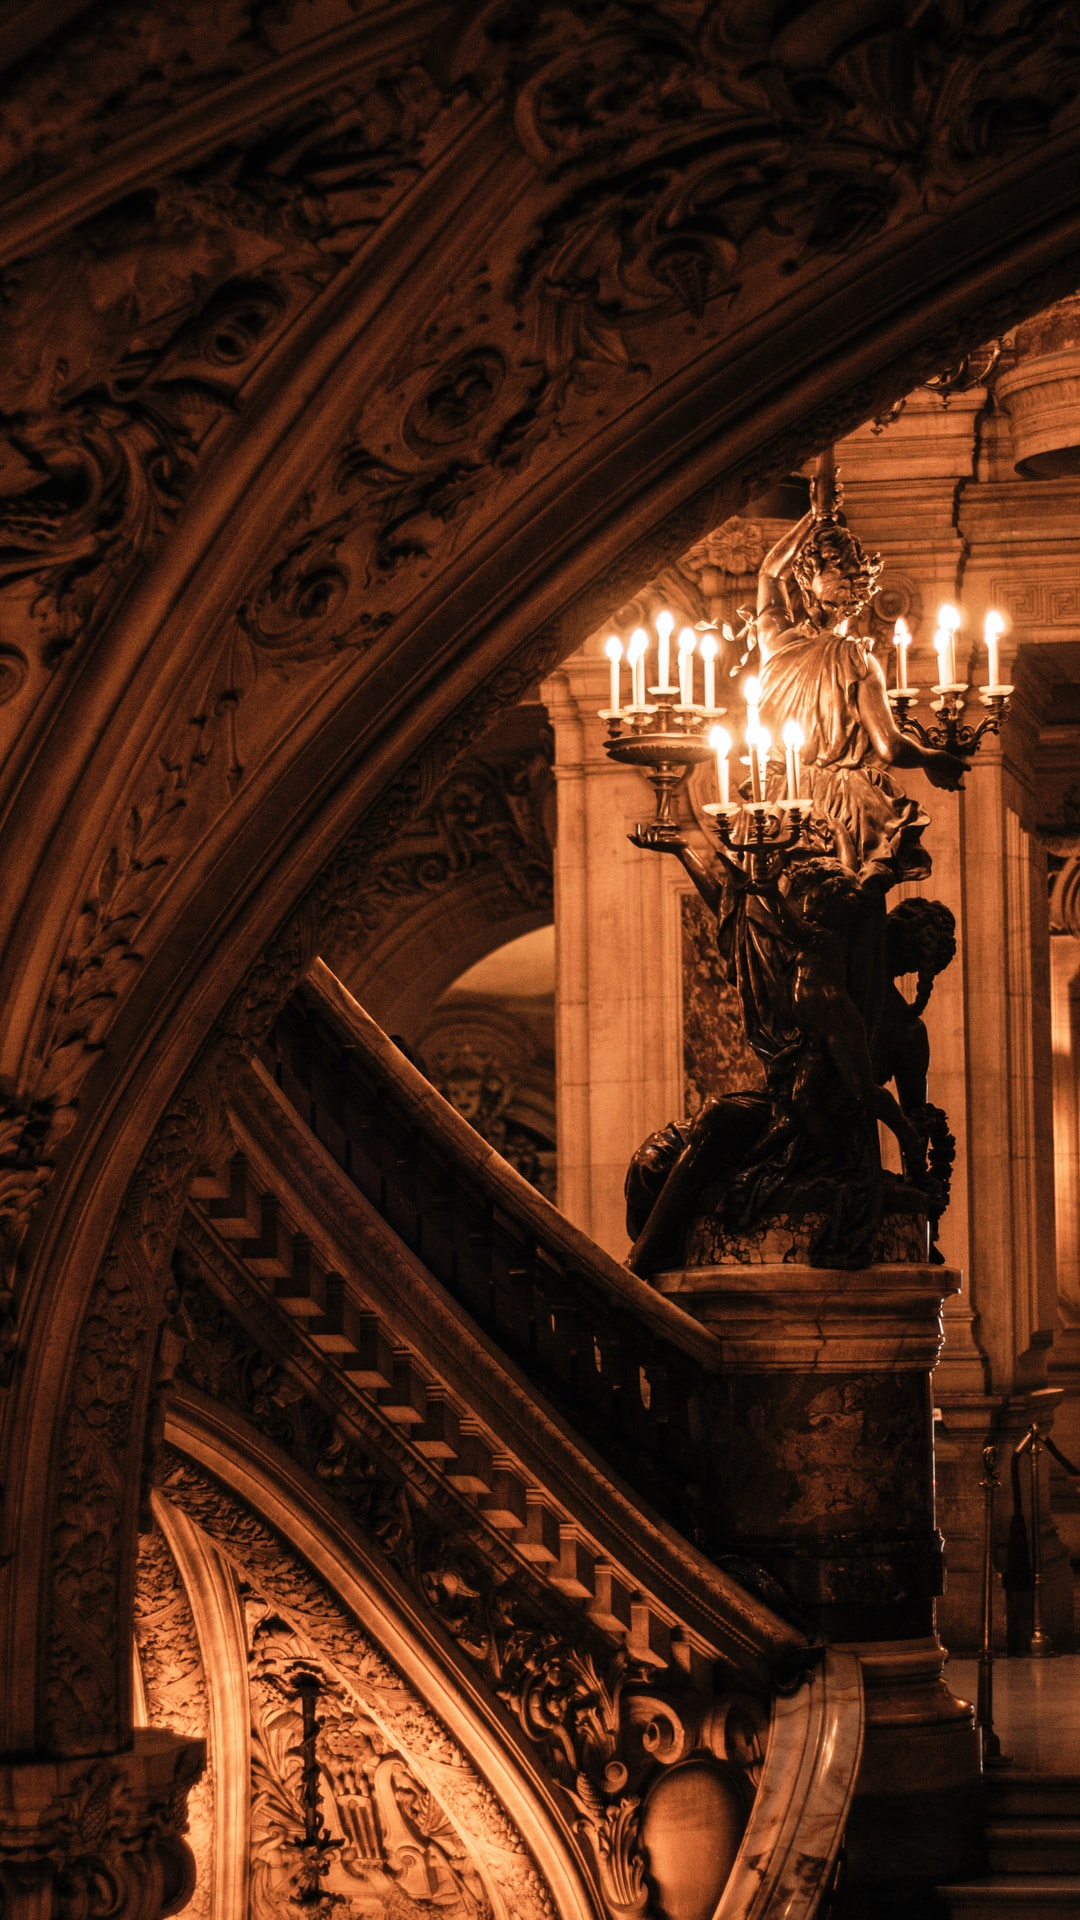 This was taken at the end of the tour guide inside Palais Garnier. A magic place, where you are static and the statues, paintings and chandeliers are moving.